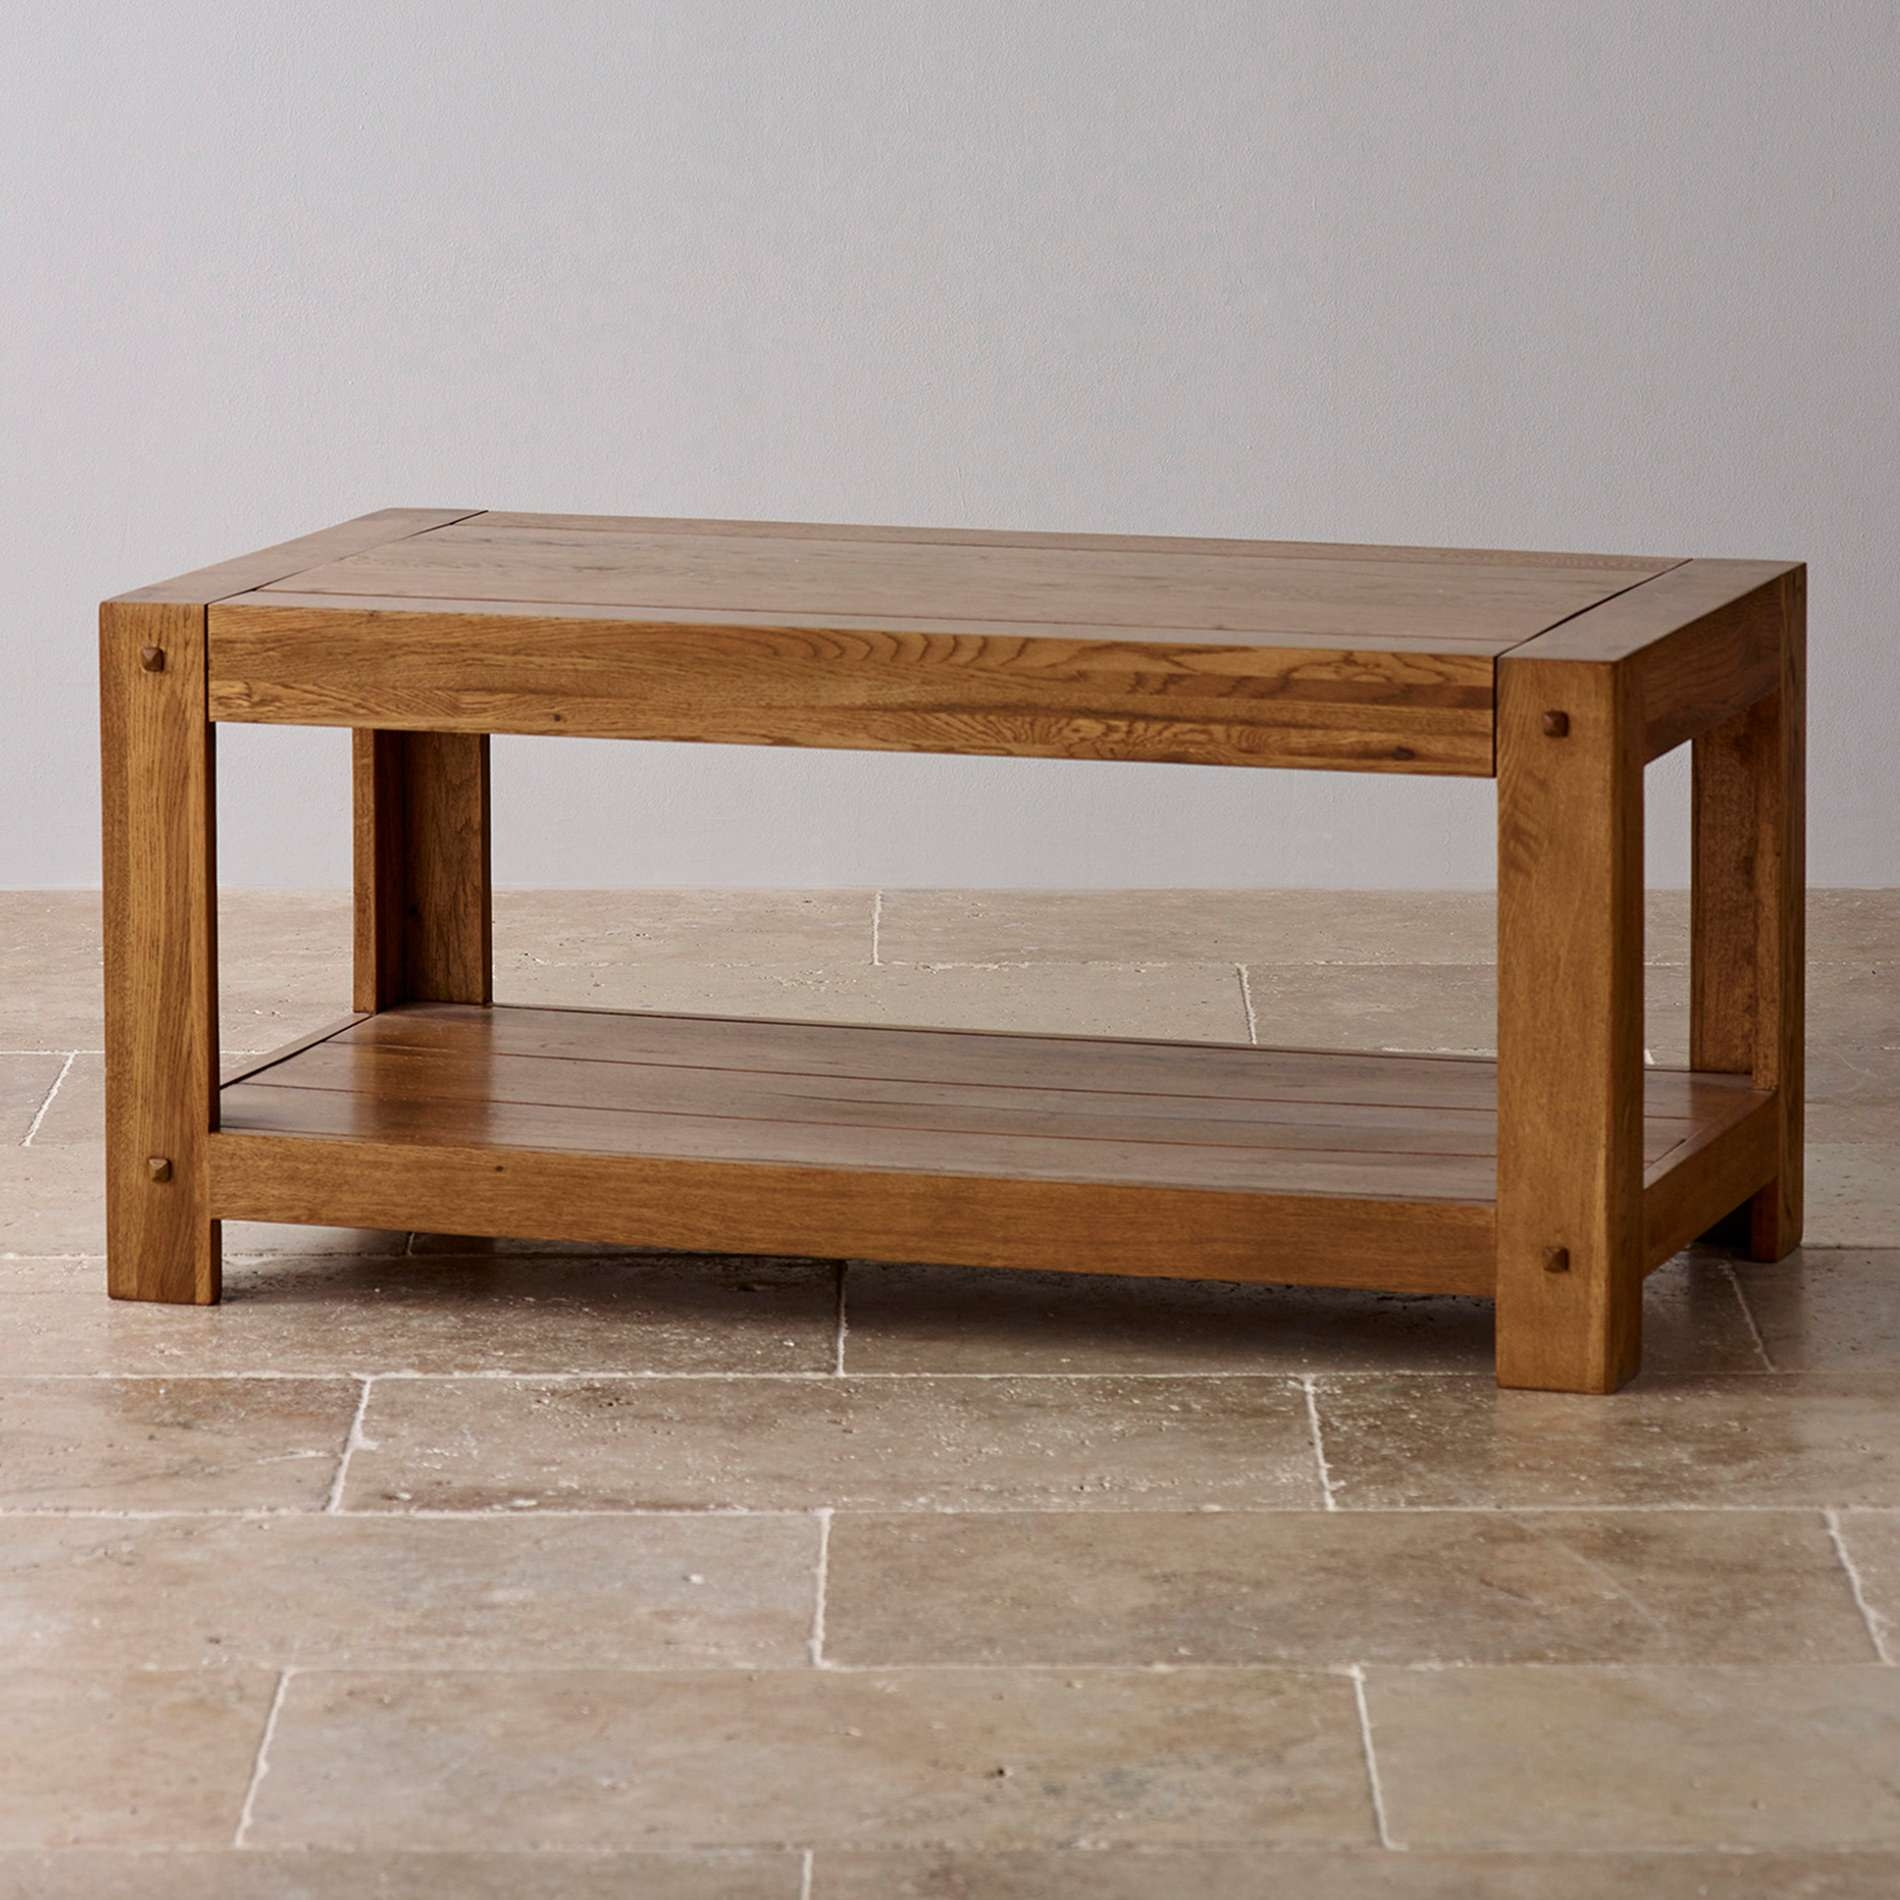 Well Known Chunky Oak Coffee Tables Intended For What Kind Of Floor Tiles Combined With An Oak Coffee Table? — The (View 19 of 20)